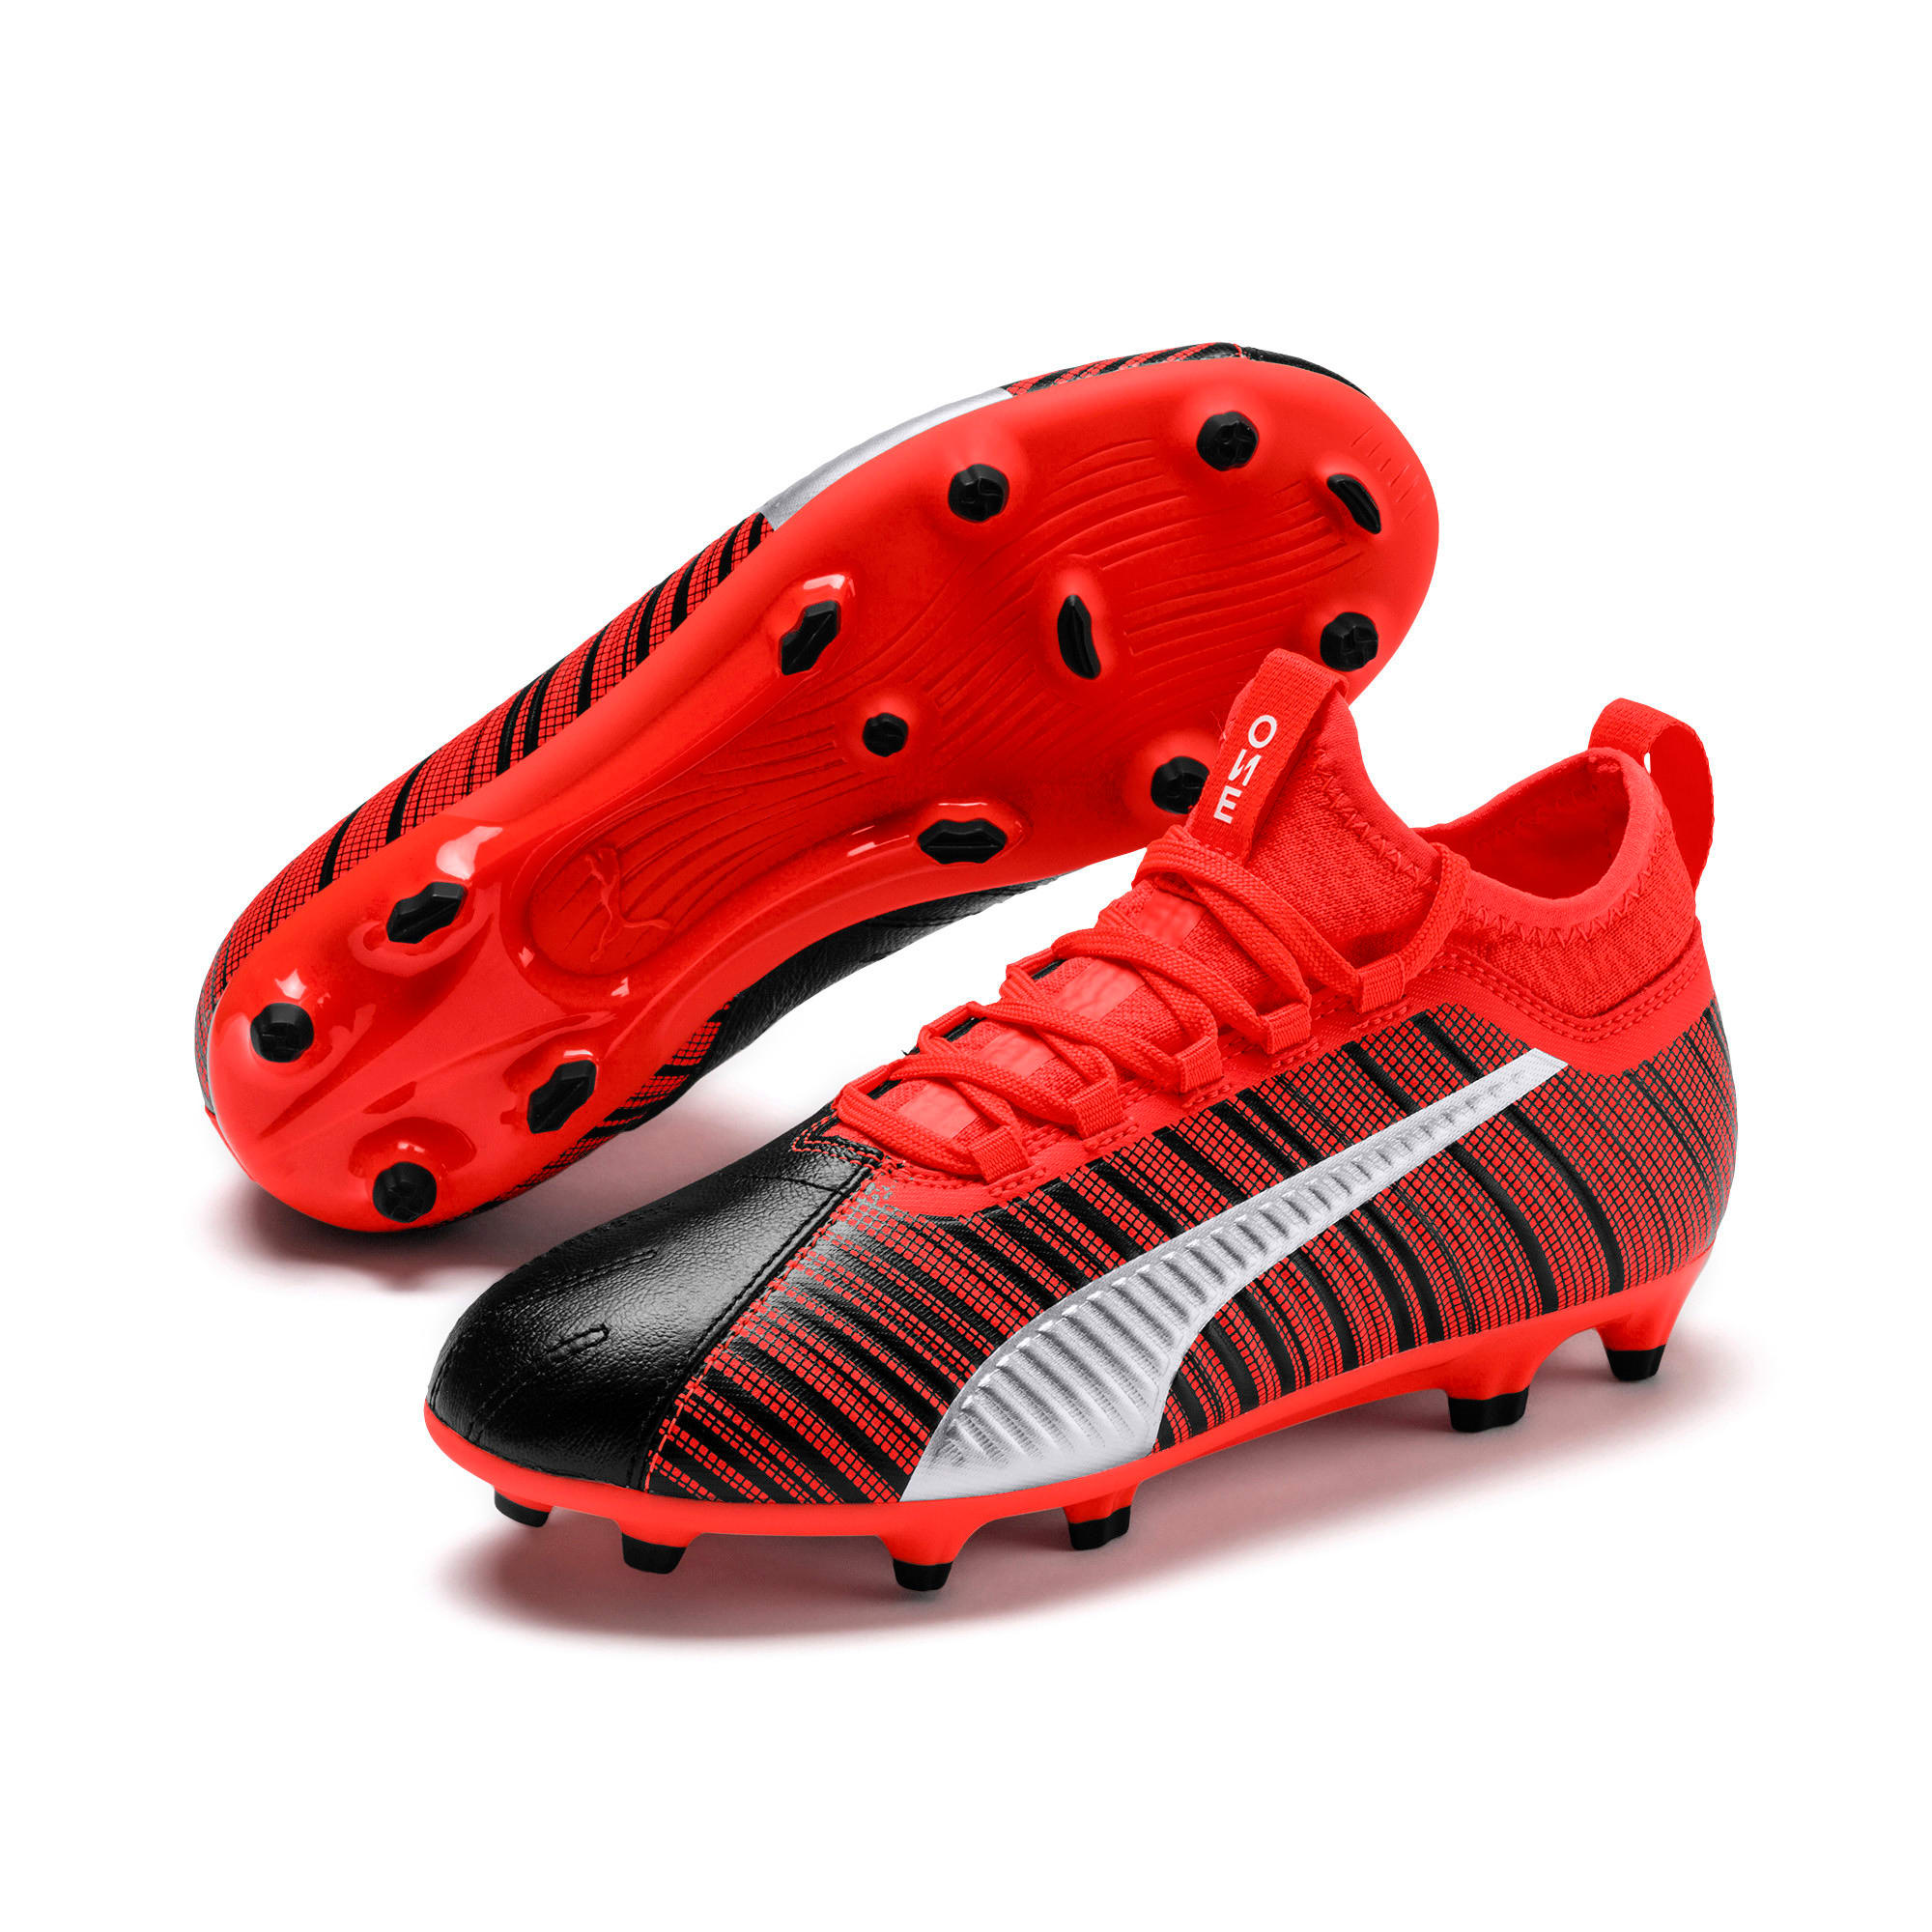 Thumbnail 2 of PUMA ONE 5.3 FG/AG Soccer Cleats JR, Black-Nrgy Red-Aged Silver, medium